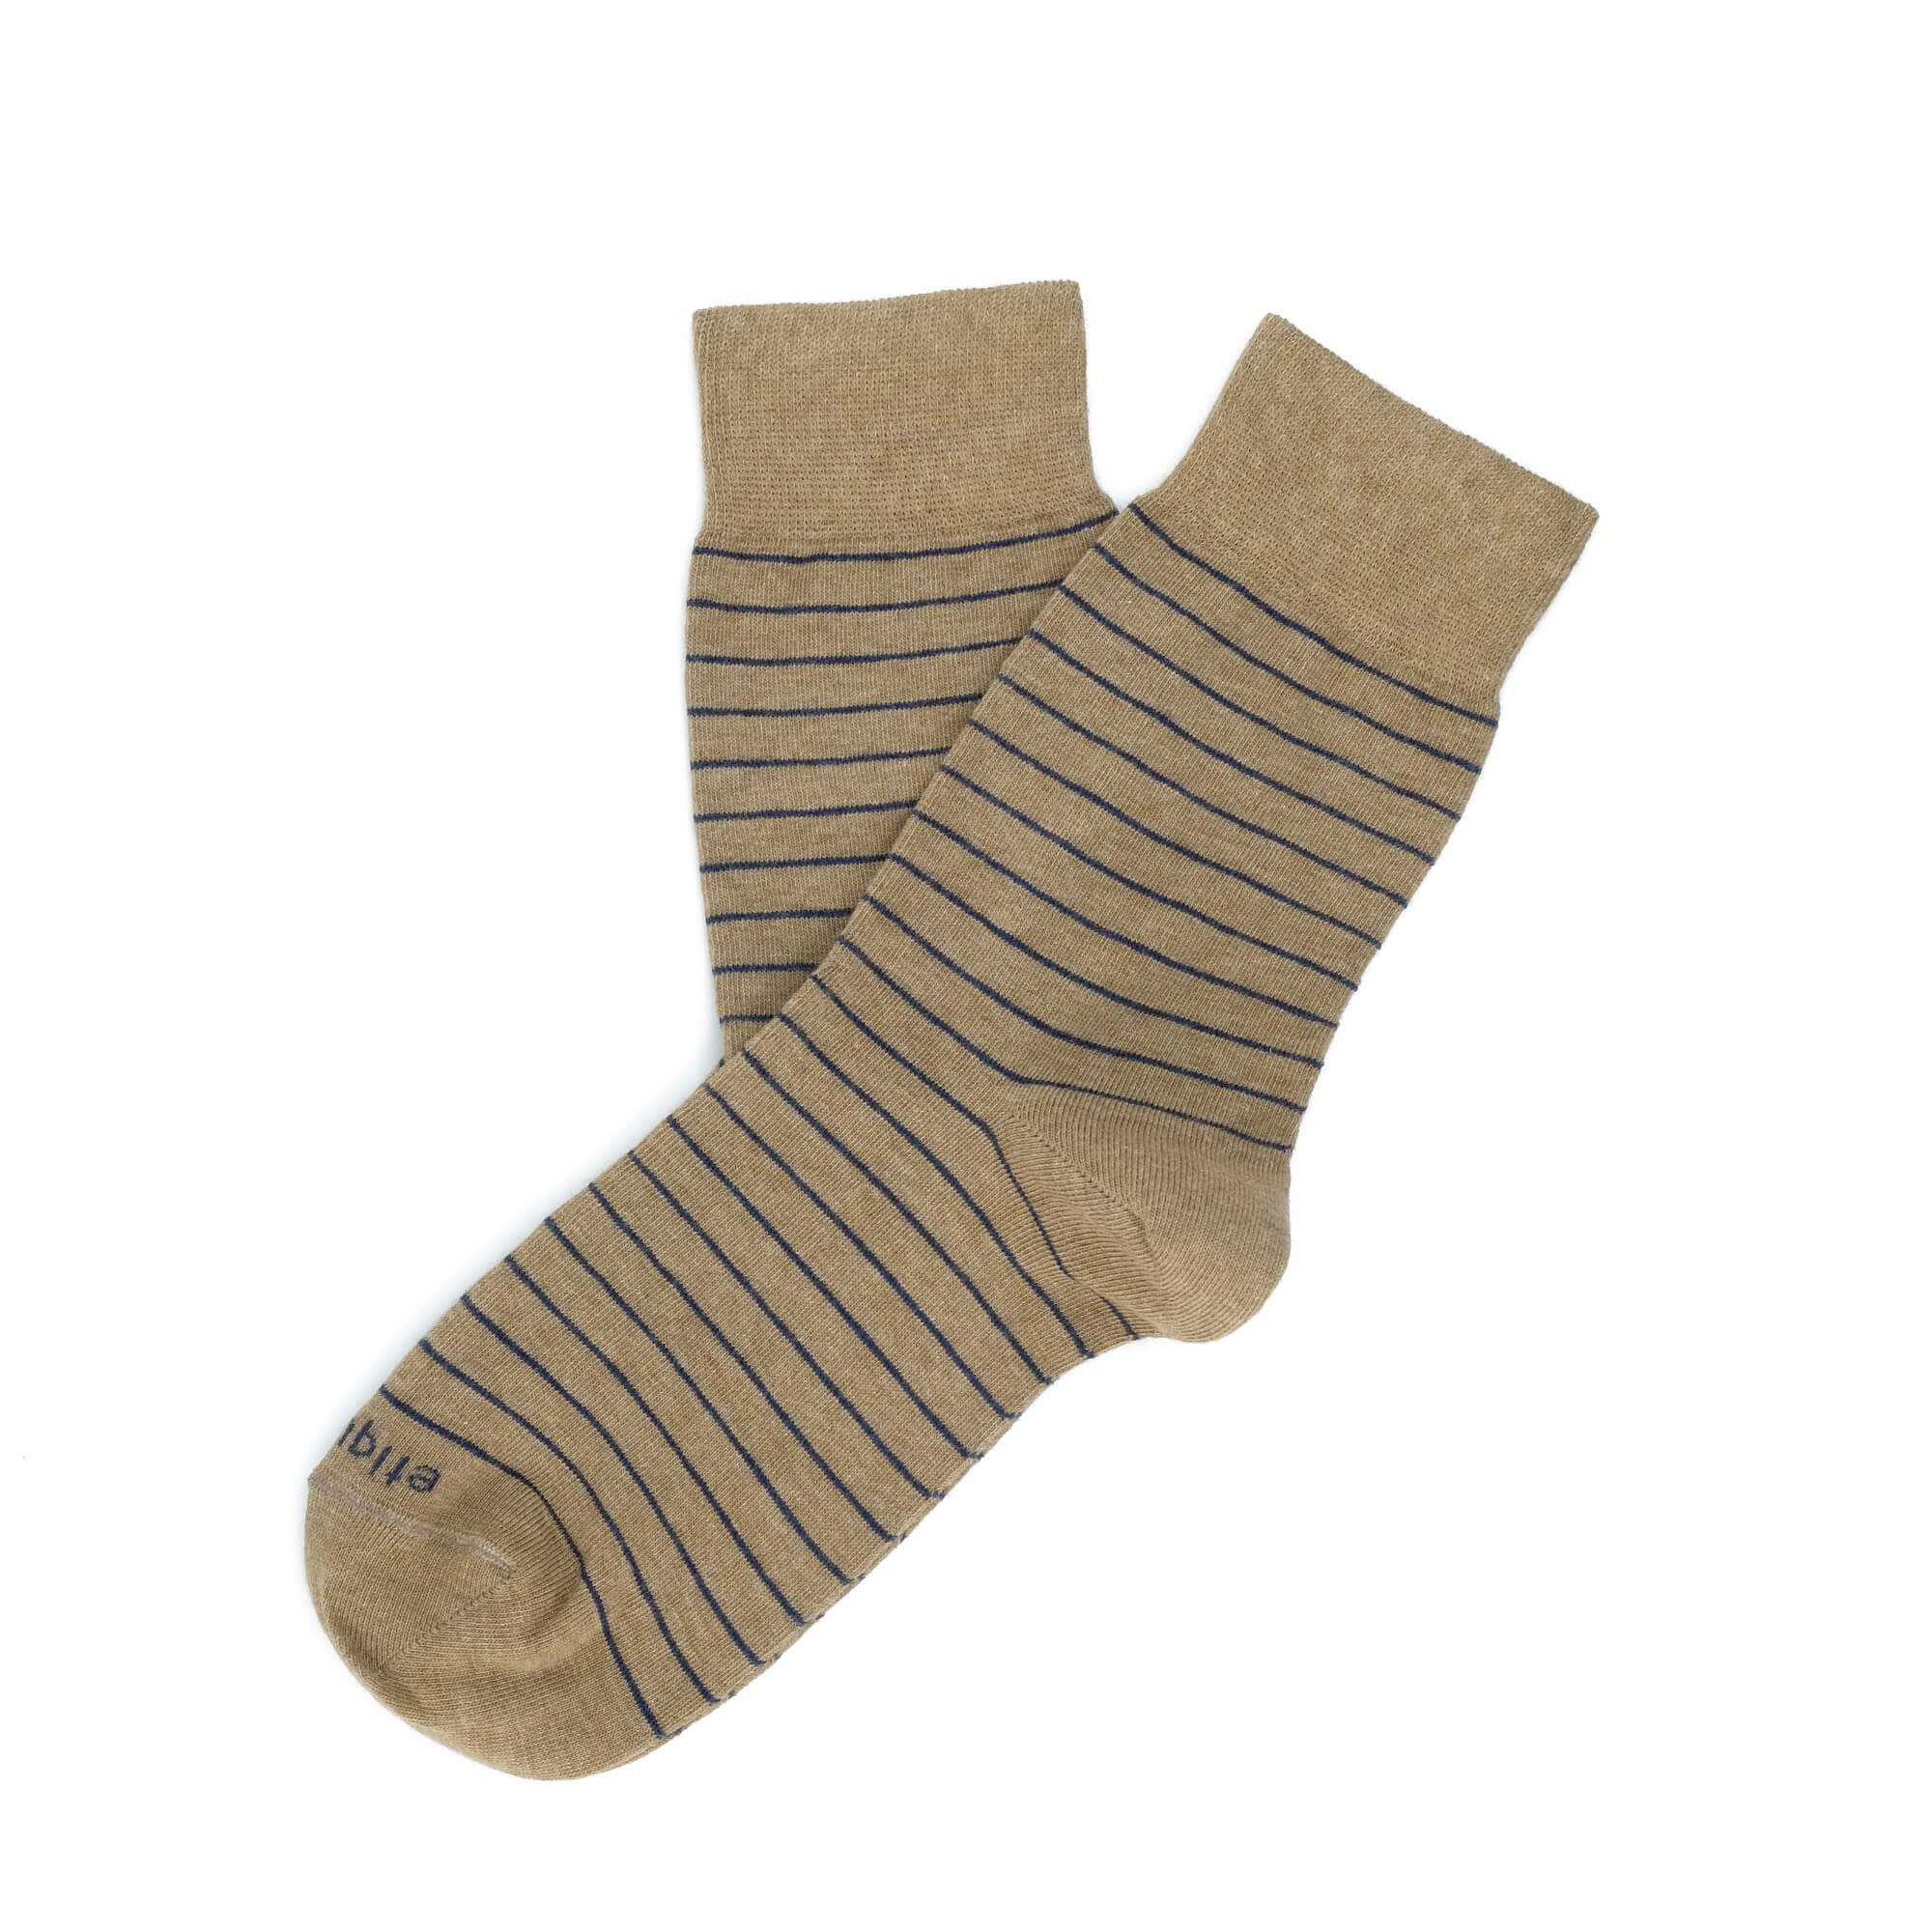 Womens Socks - Needle Stripes Women's Socks - Brown⎪Etiquette Clothiers